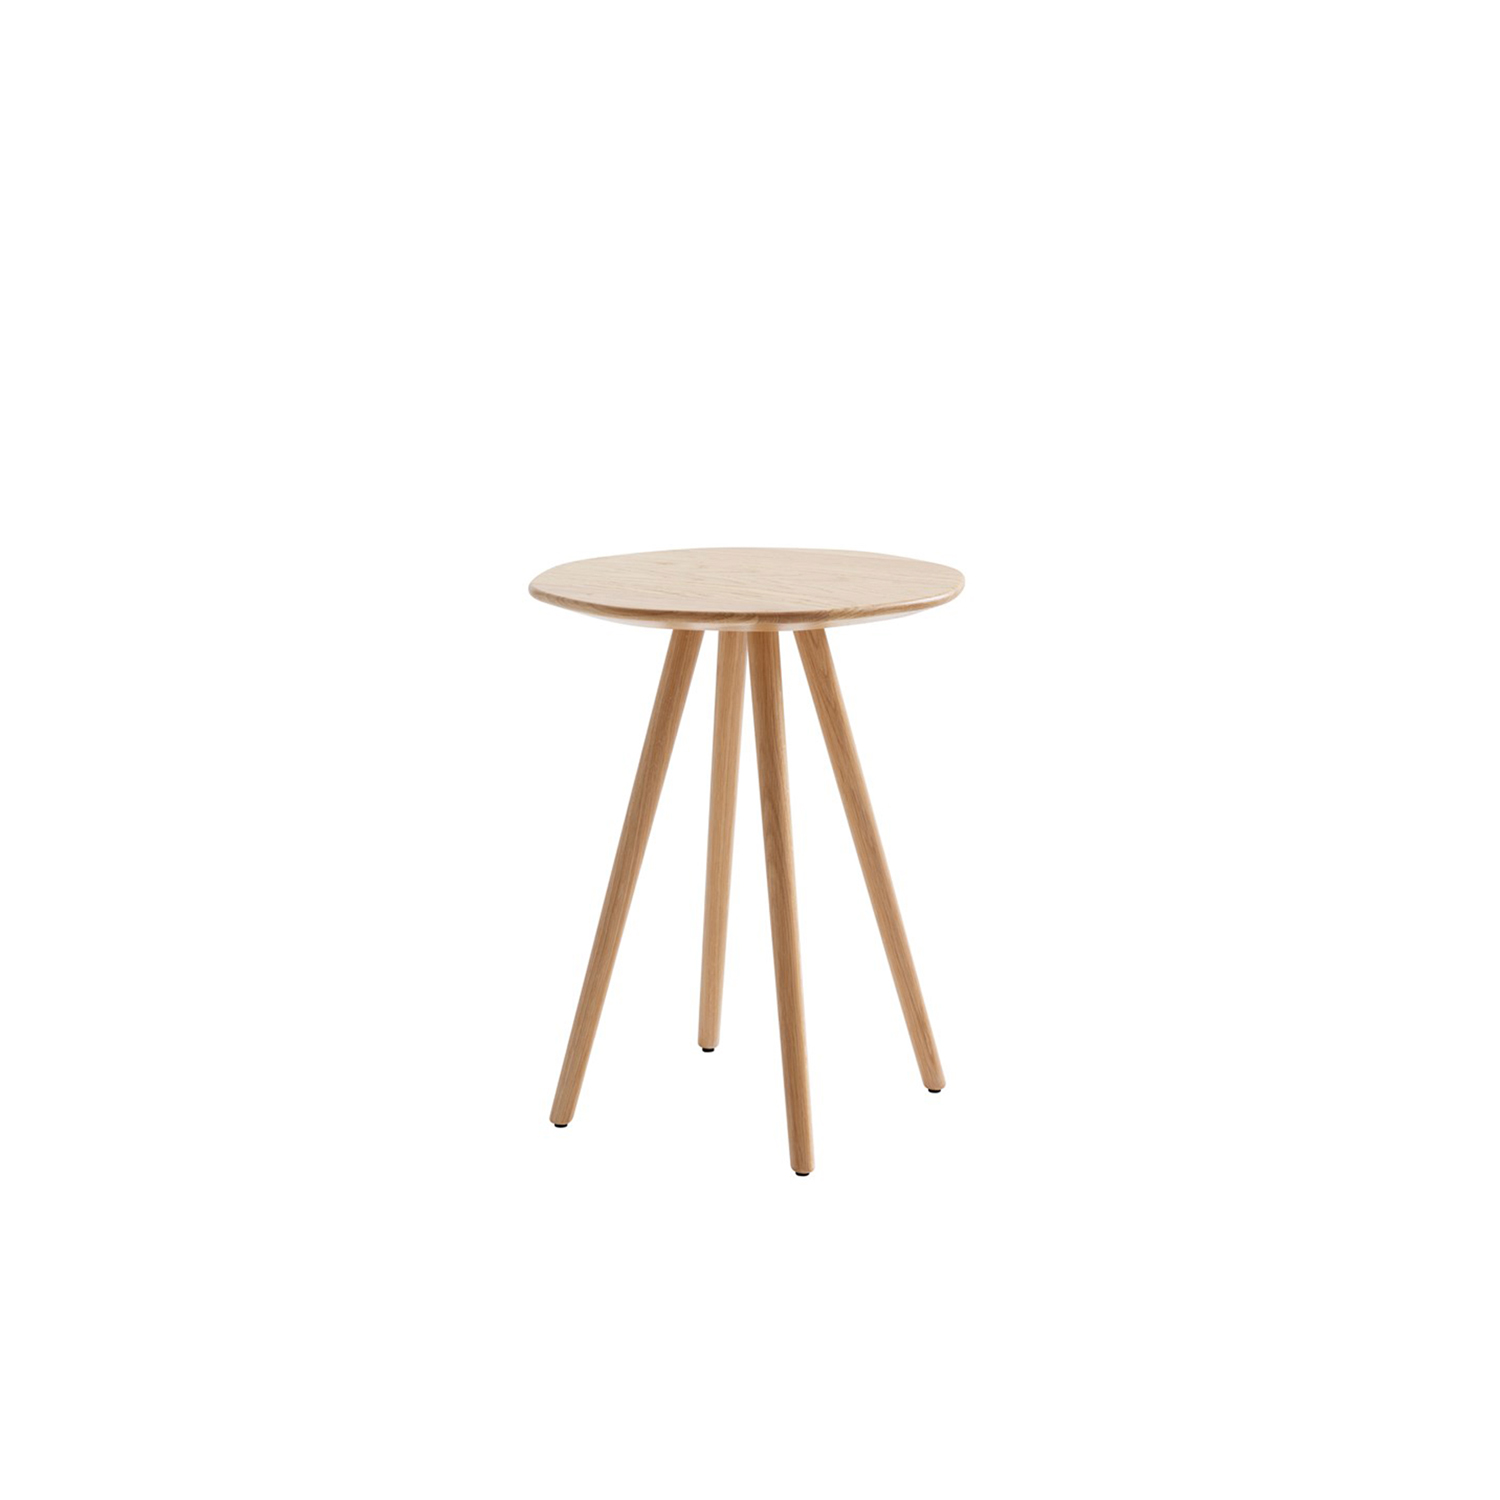 Eight 45 Coffee Table - Louise Hederström longed to explore how a strict geometrical form could become organic without losing its intrinsic 'mathematical' character. The result was Eight (2018) coffee table – a flowing octagonal design that works equally well in both formal and more relaxed furniture settings. Eight is available in three versions (H530 352x352, H575 454x454, H480/600x600mm). The solid wood table comes in oak, ash, birch, standard stains on ash and white glazed oak or ash.  Tables are also available in our standard colors with a tabletop of MDF. Despite its slim silhouette, Eight table stands stable and steady on its four legs. Please enquire for details of non-standard finishes. | Matter of Stuff